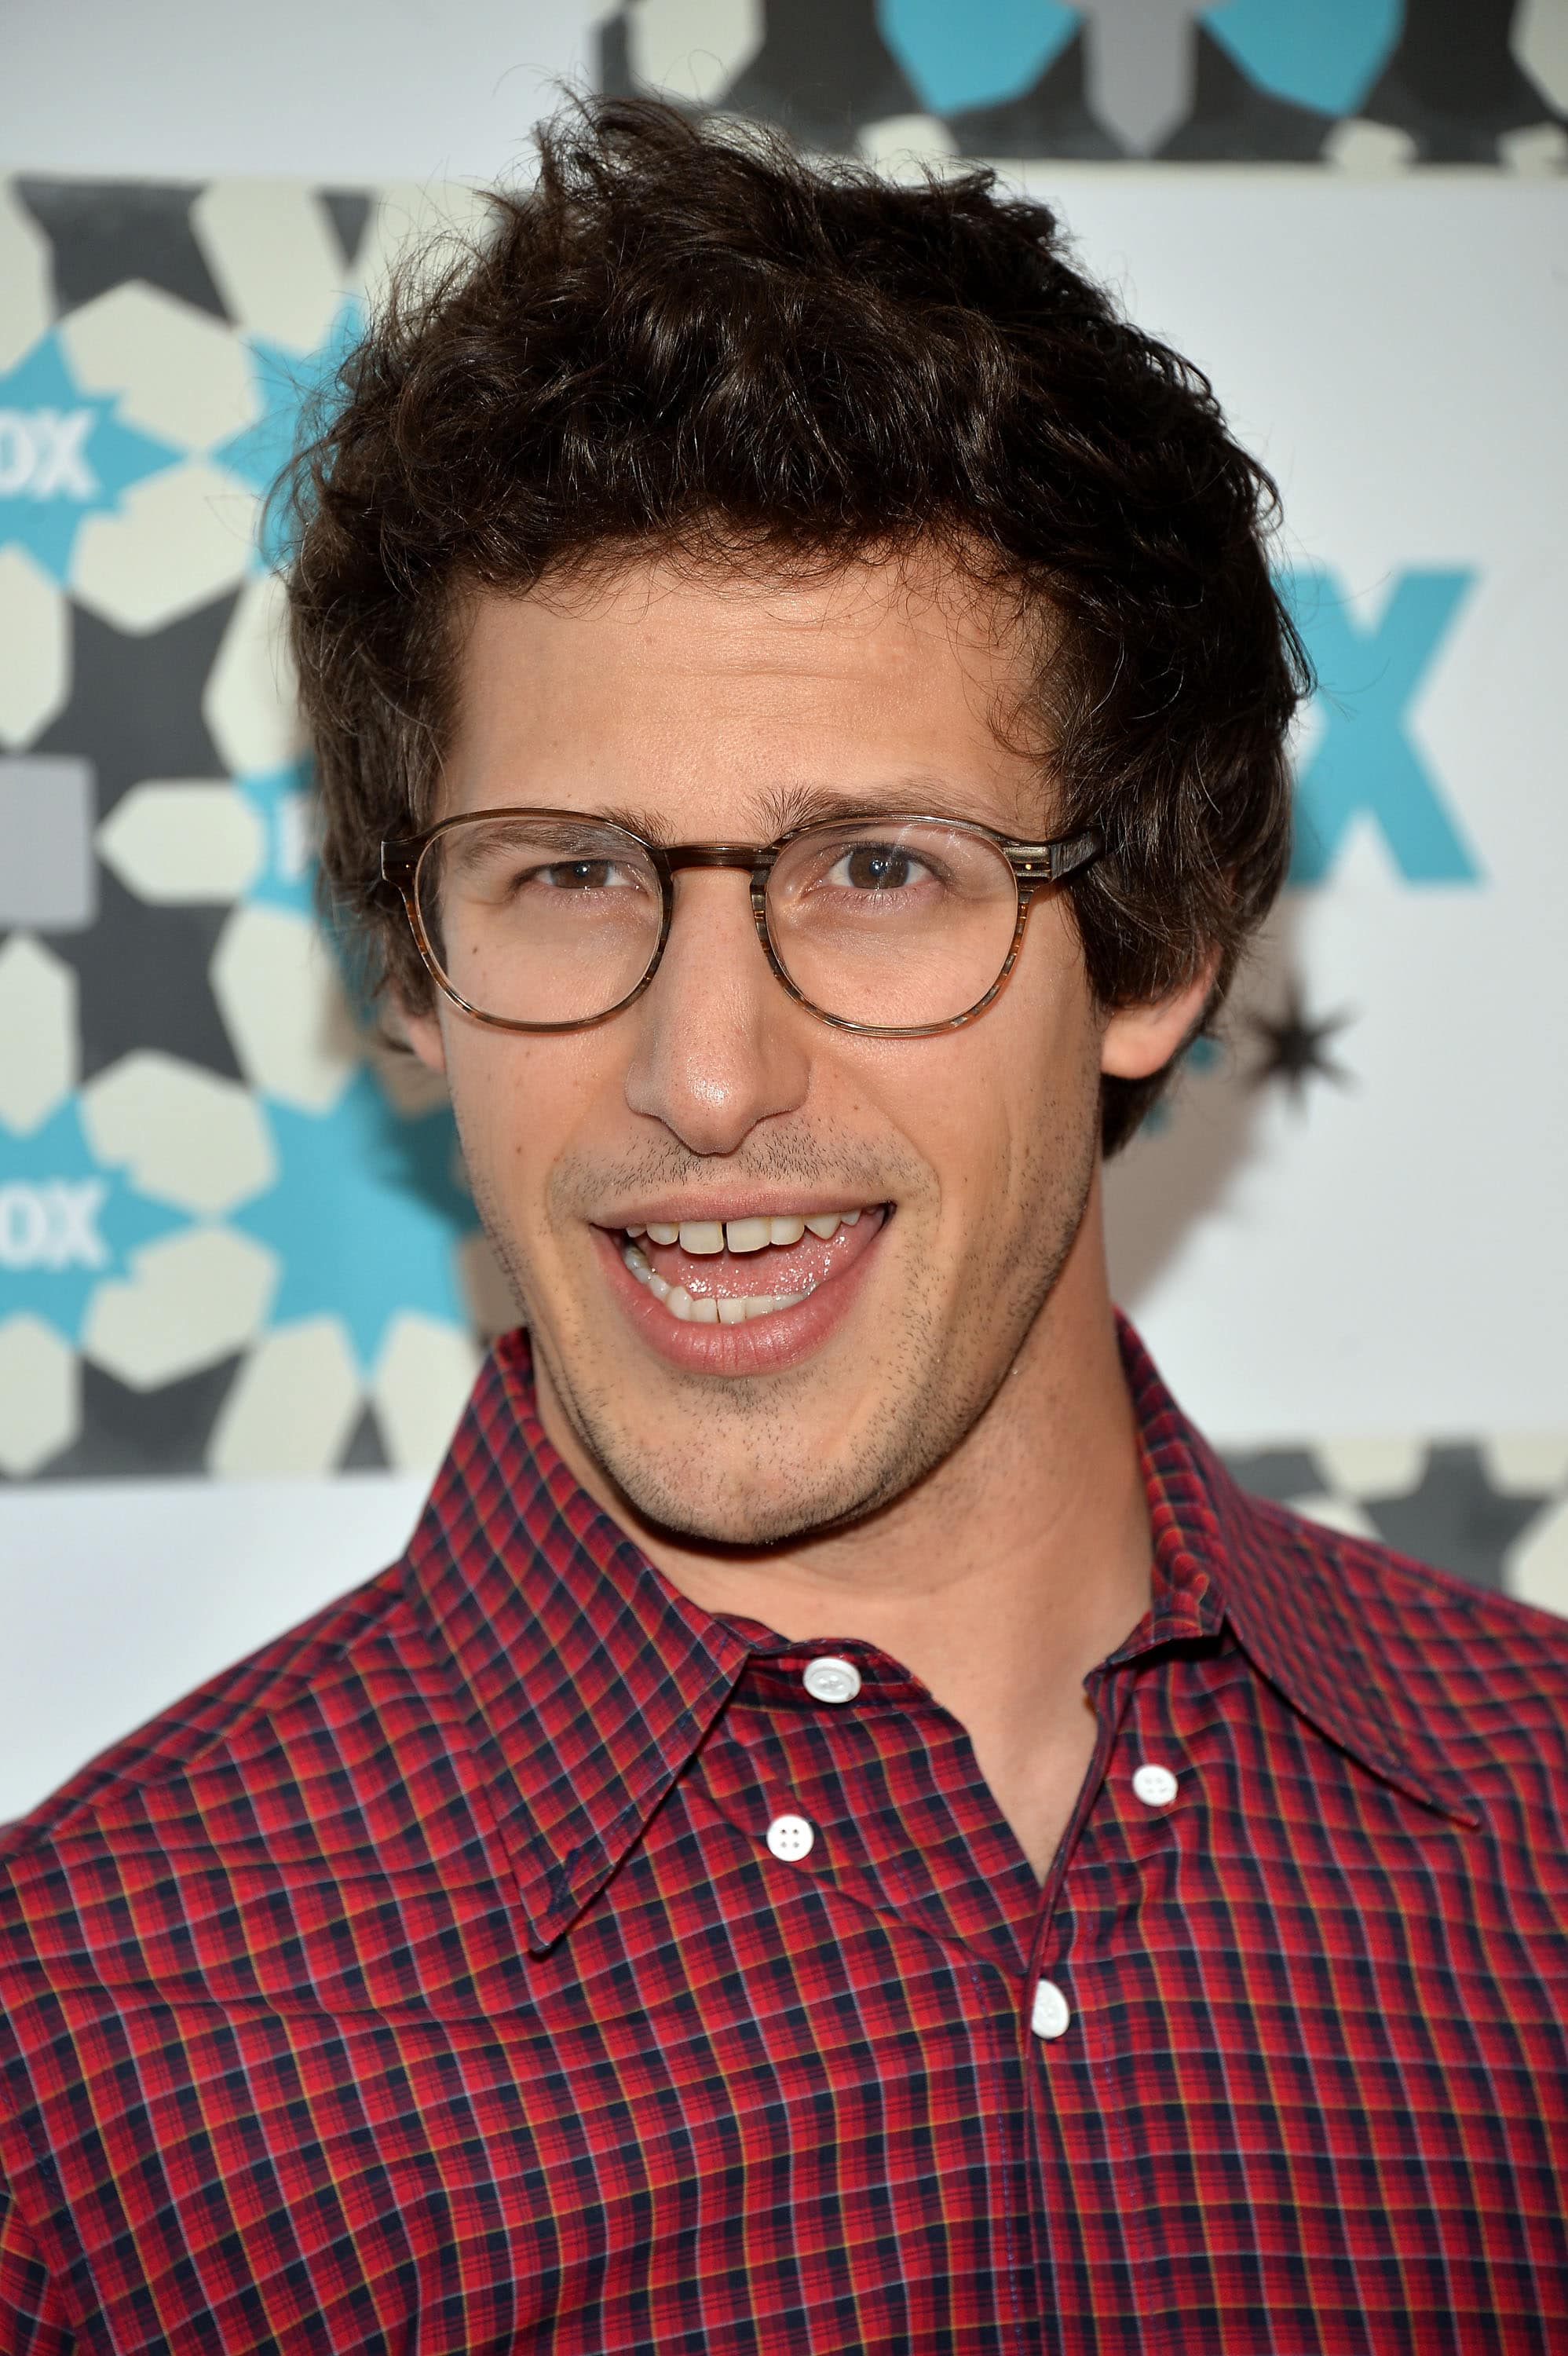 Andy Samberg American Actor, Comedian, Screenwriter, Producer, Director